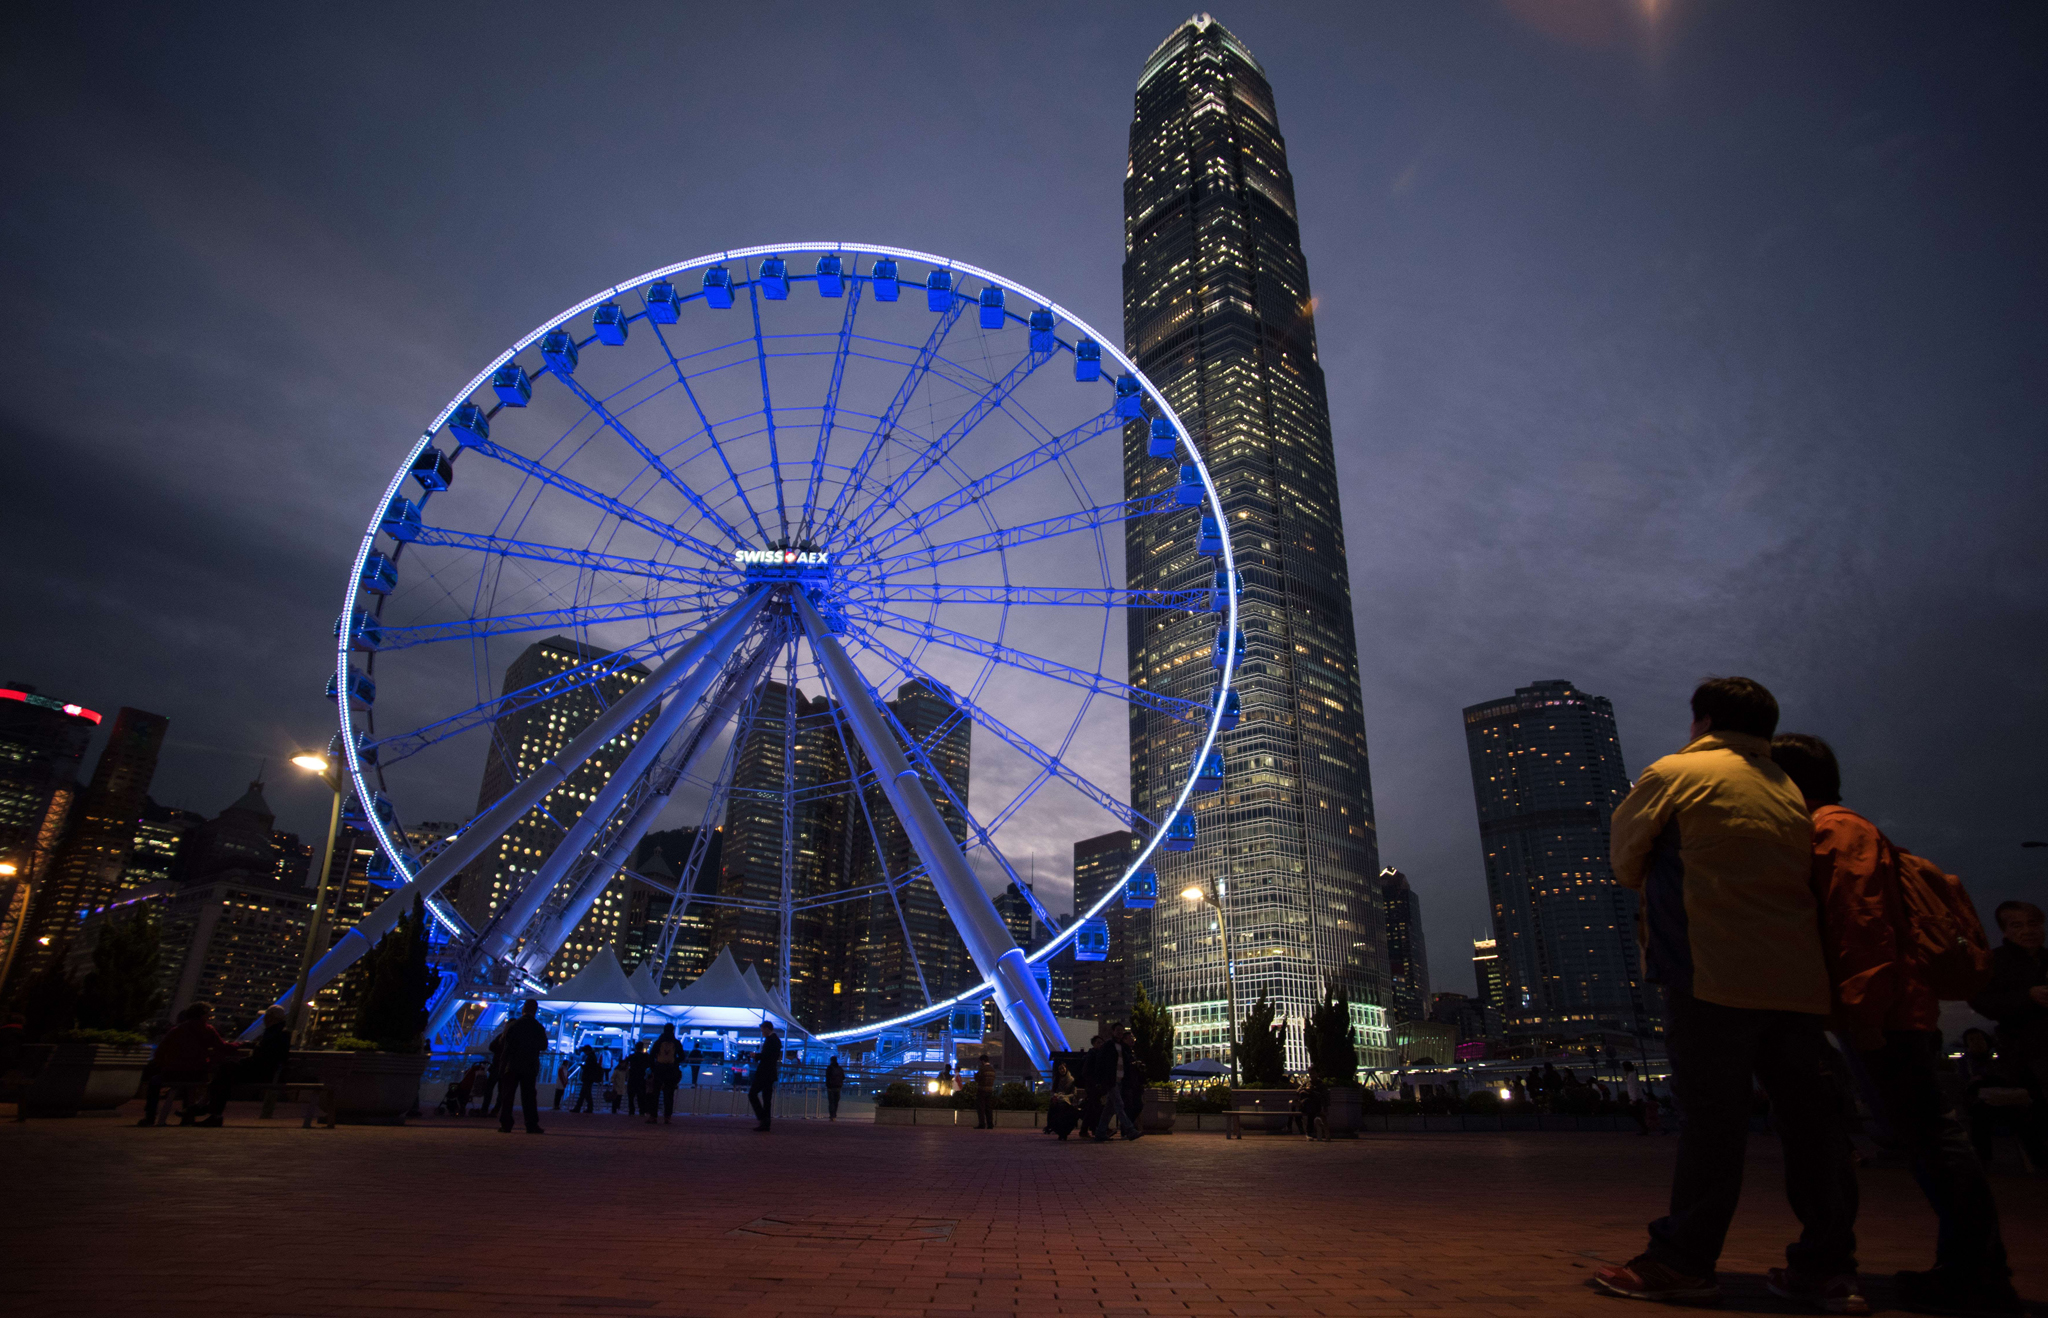 A giant 60-meter-tall ferris wheel is lit up as it is used by passengers for the first time, in the Admiralty district of Hong Kong